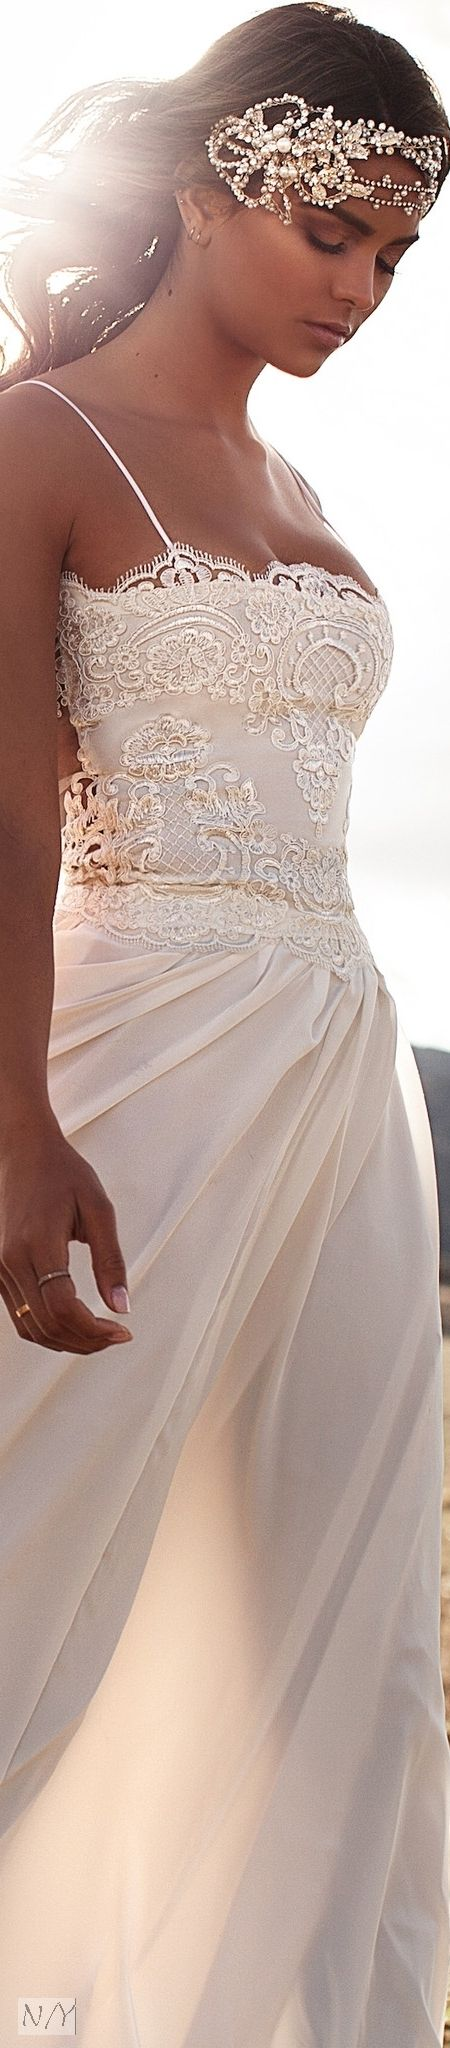 The best images about someday on pinterest wedding dressses